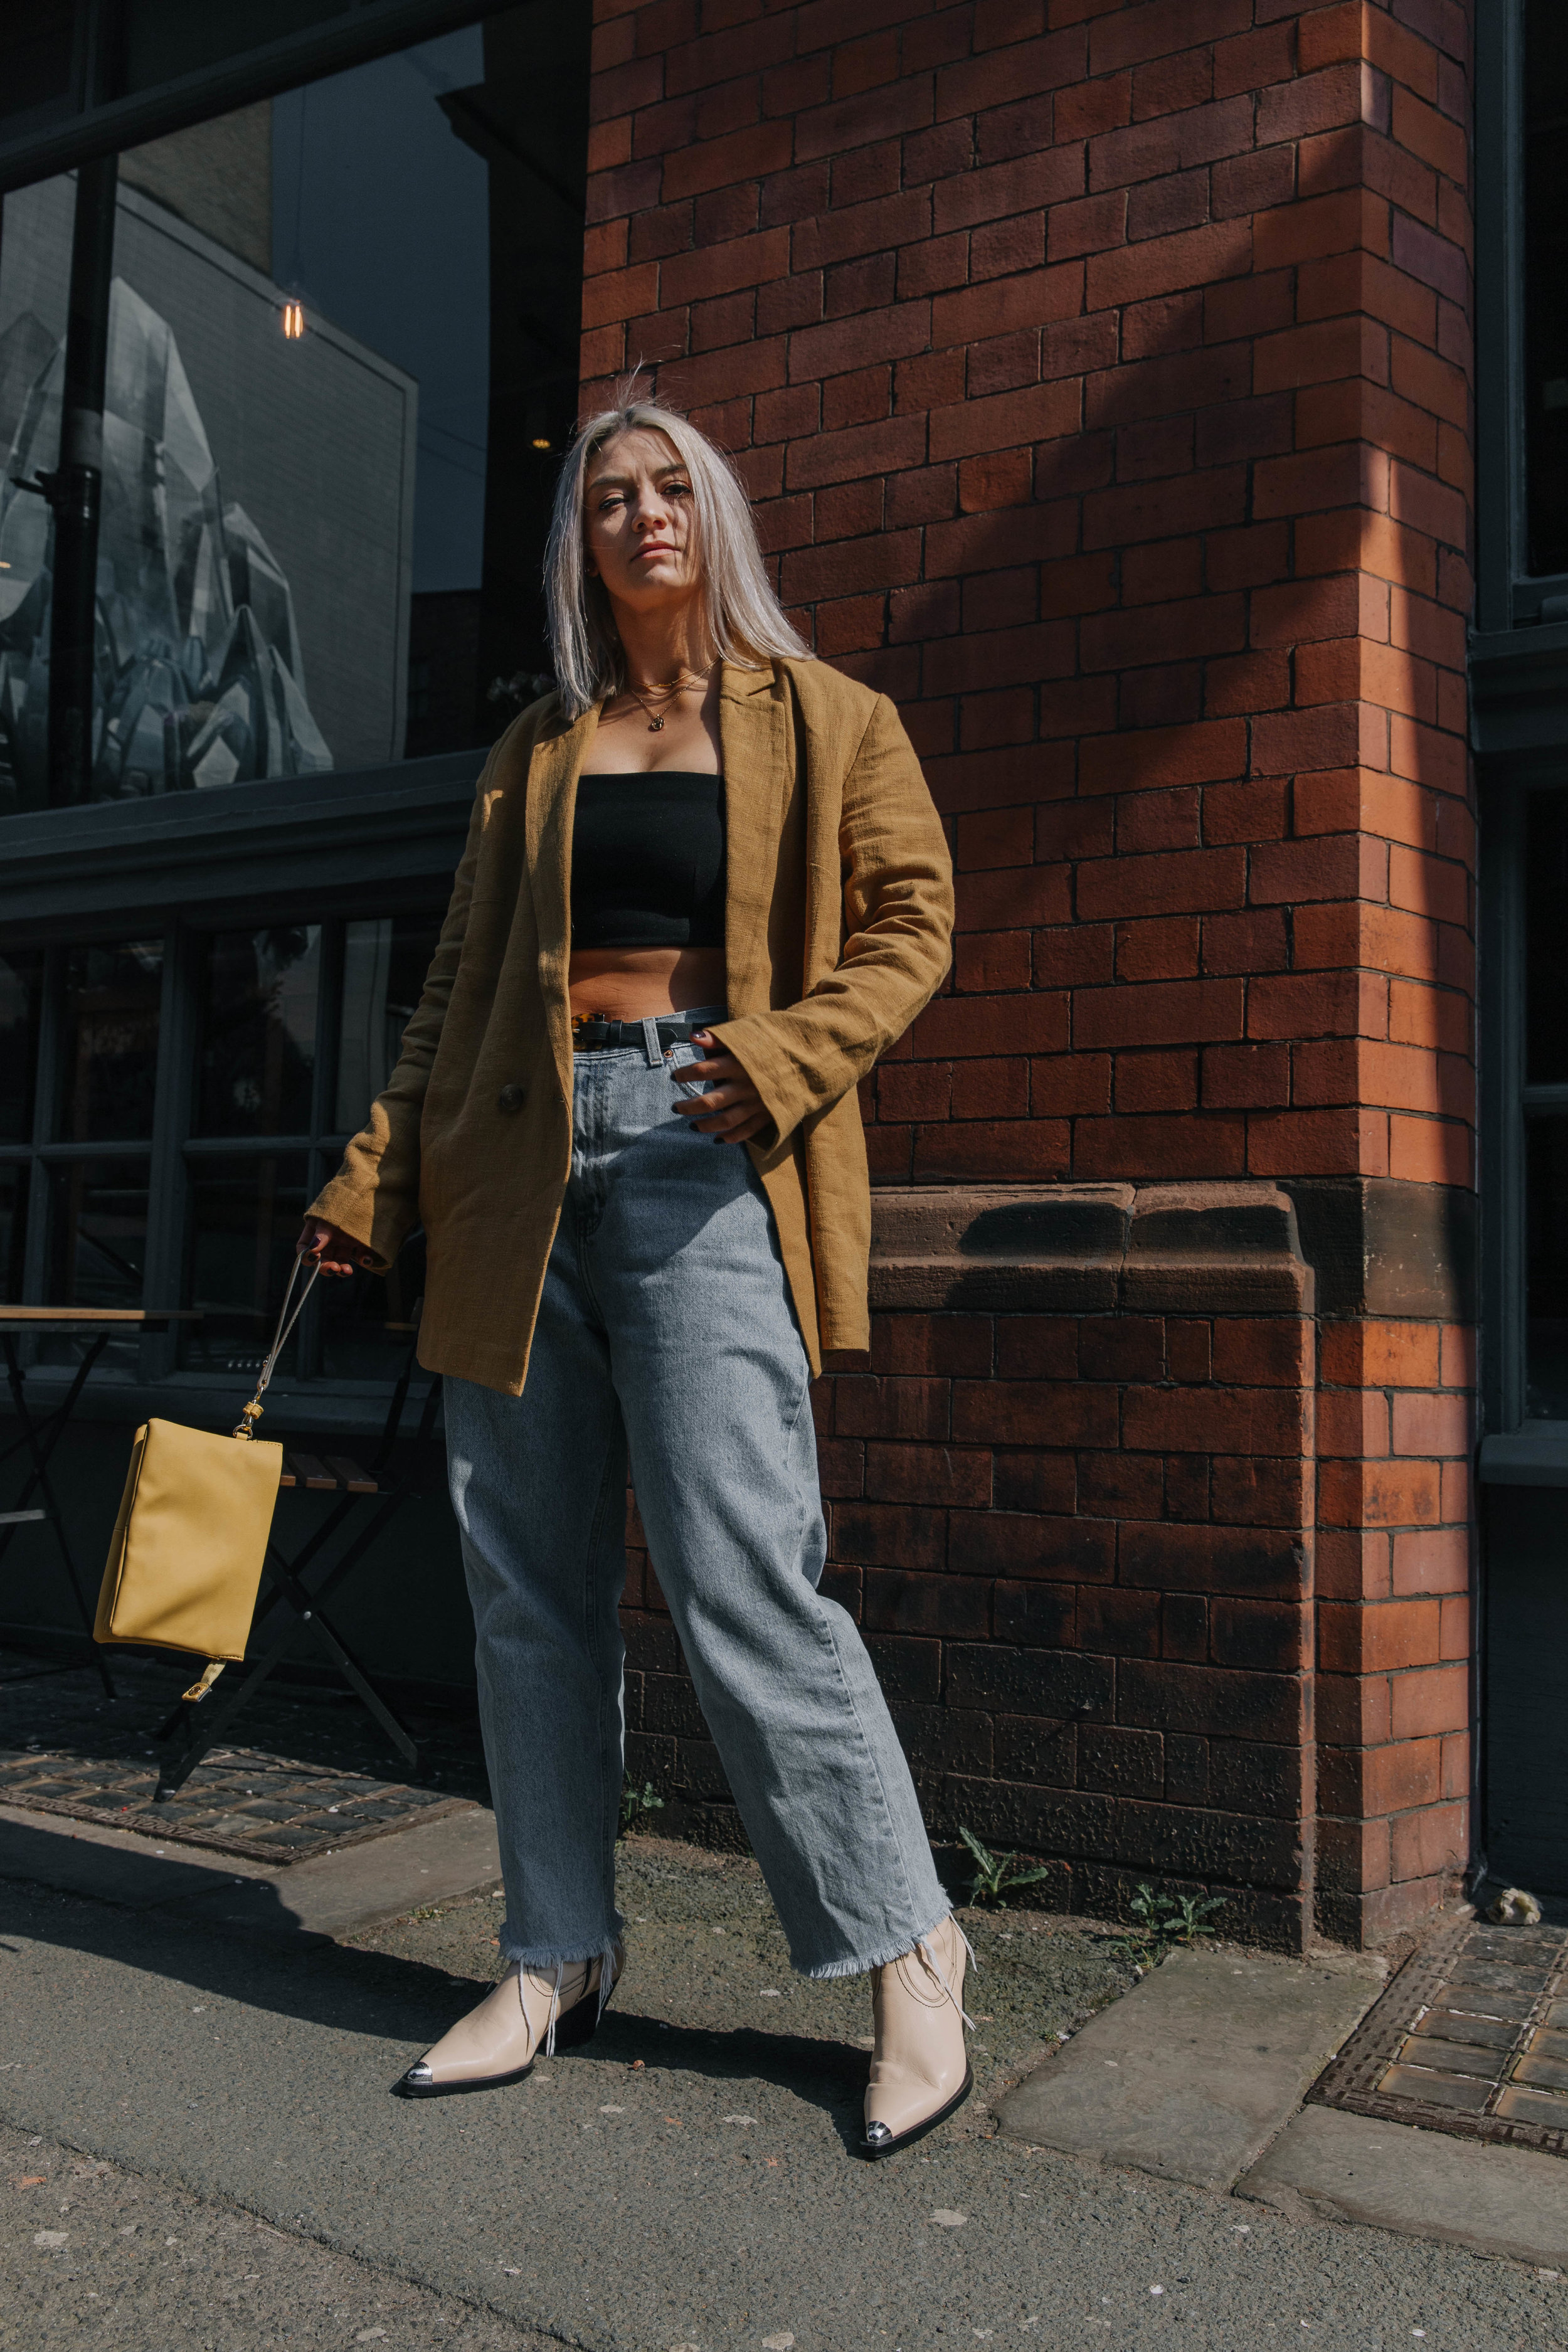 CROP TOP AND VINTAGE JEANS, WITH A BLAZER AND SS19 COWBOYS IN NORTHERN QUARTER, MANCHESTER 5